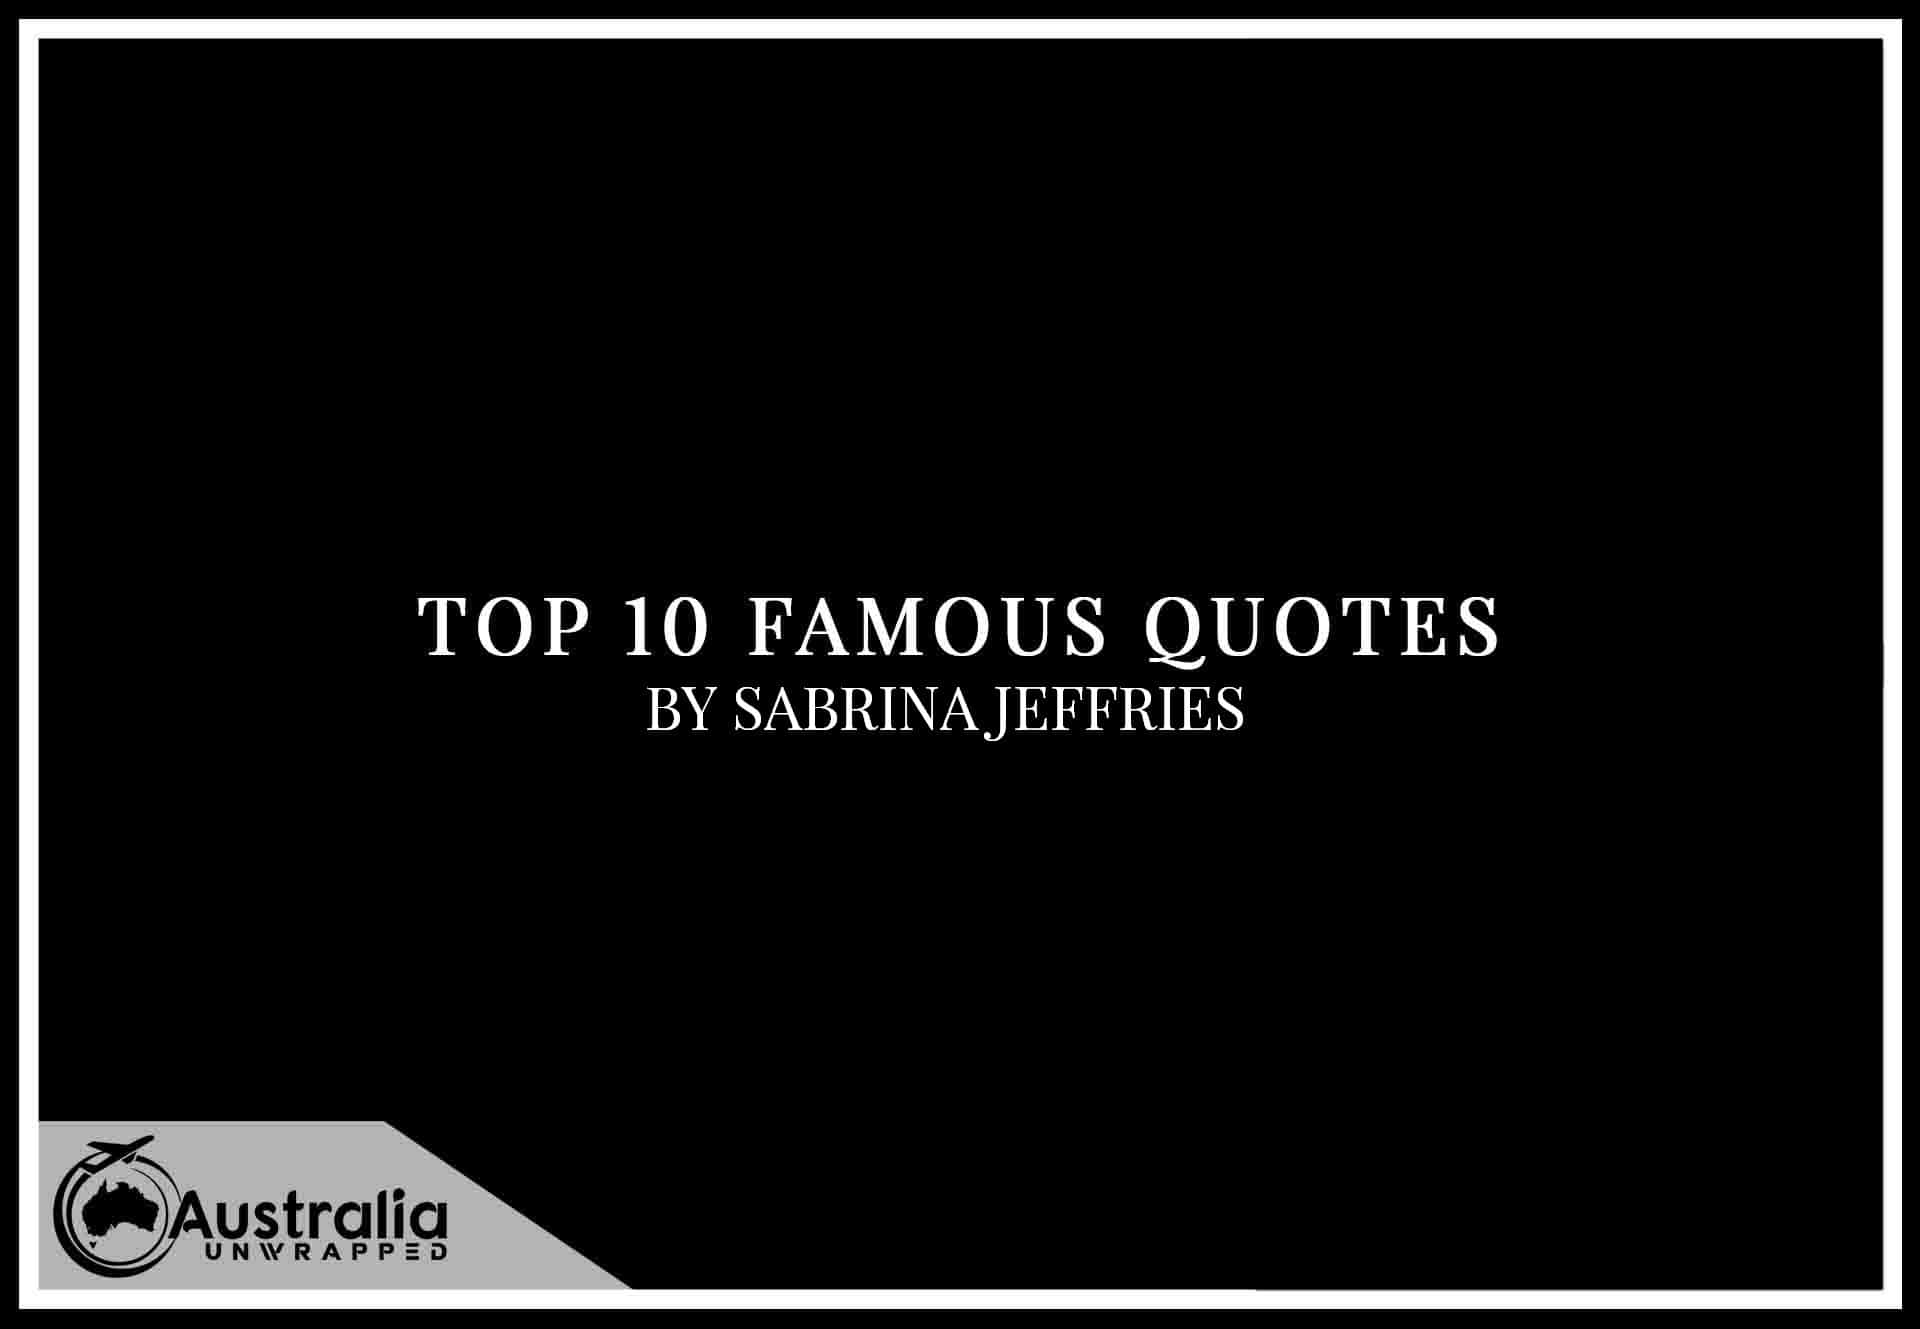 Top 10 Famous Quotes by Author Sabrina Jeffries